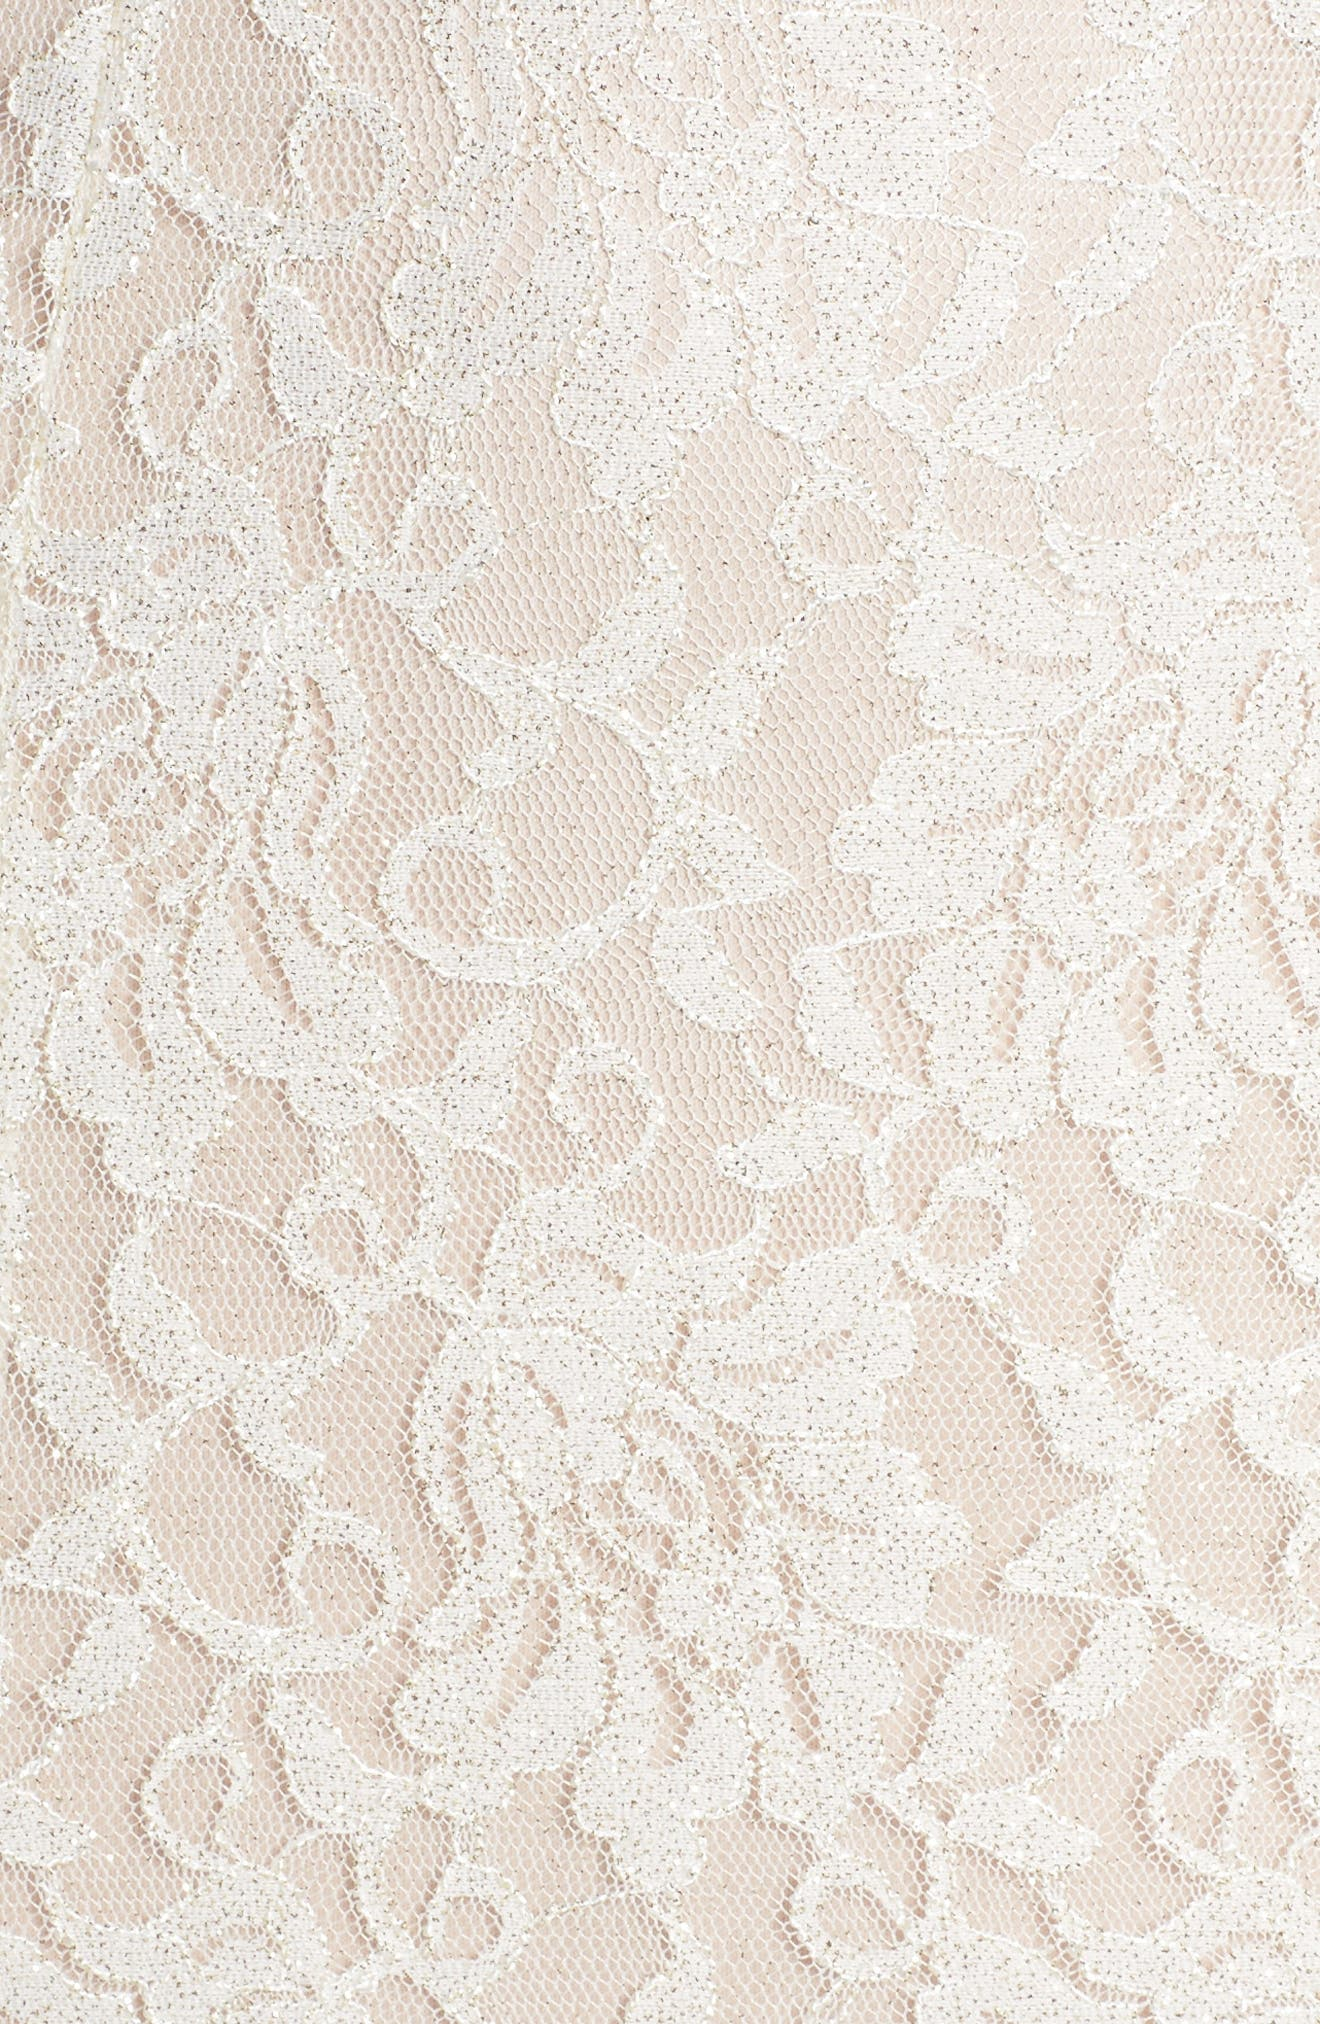 Scallop Detail Lace Gown,                             Alternate thumbnail 5, color,                             Ivory/ Nude